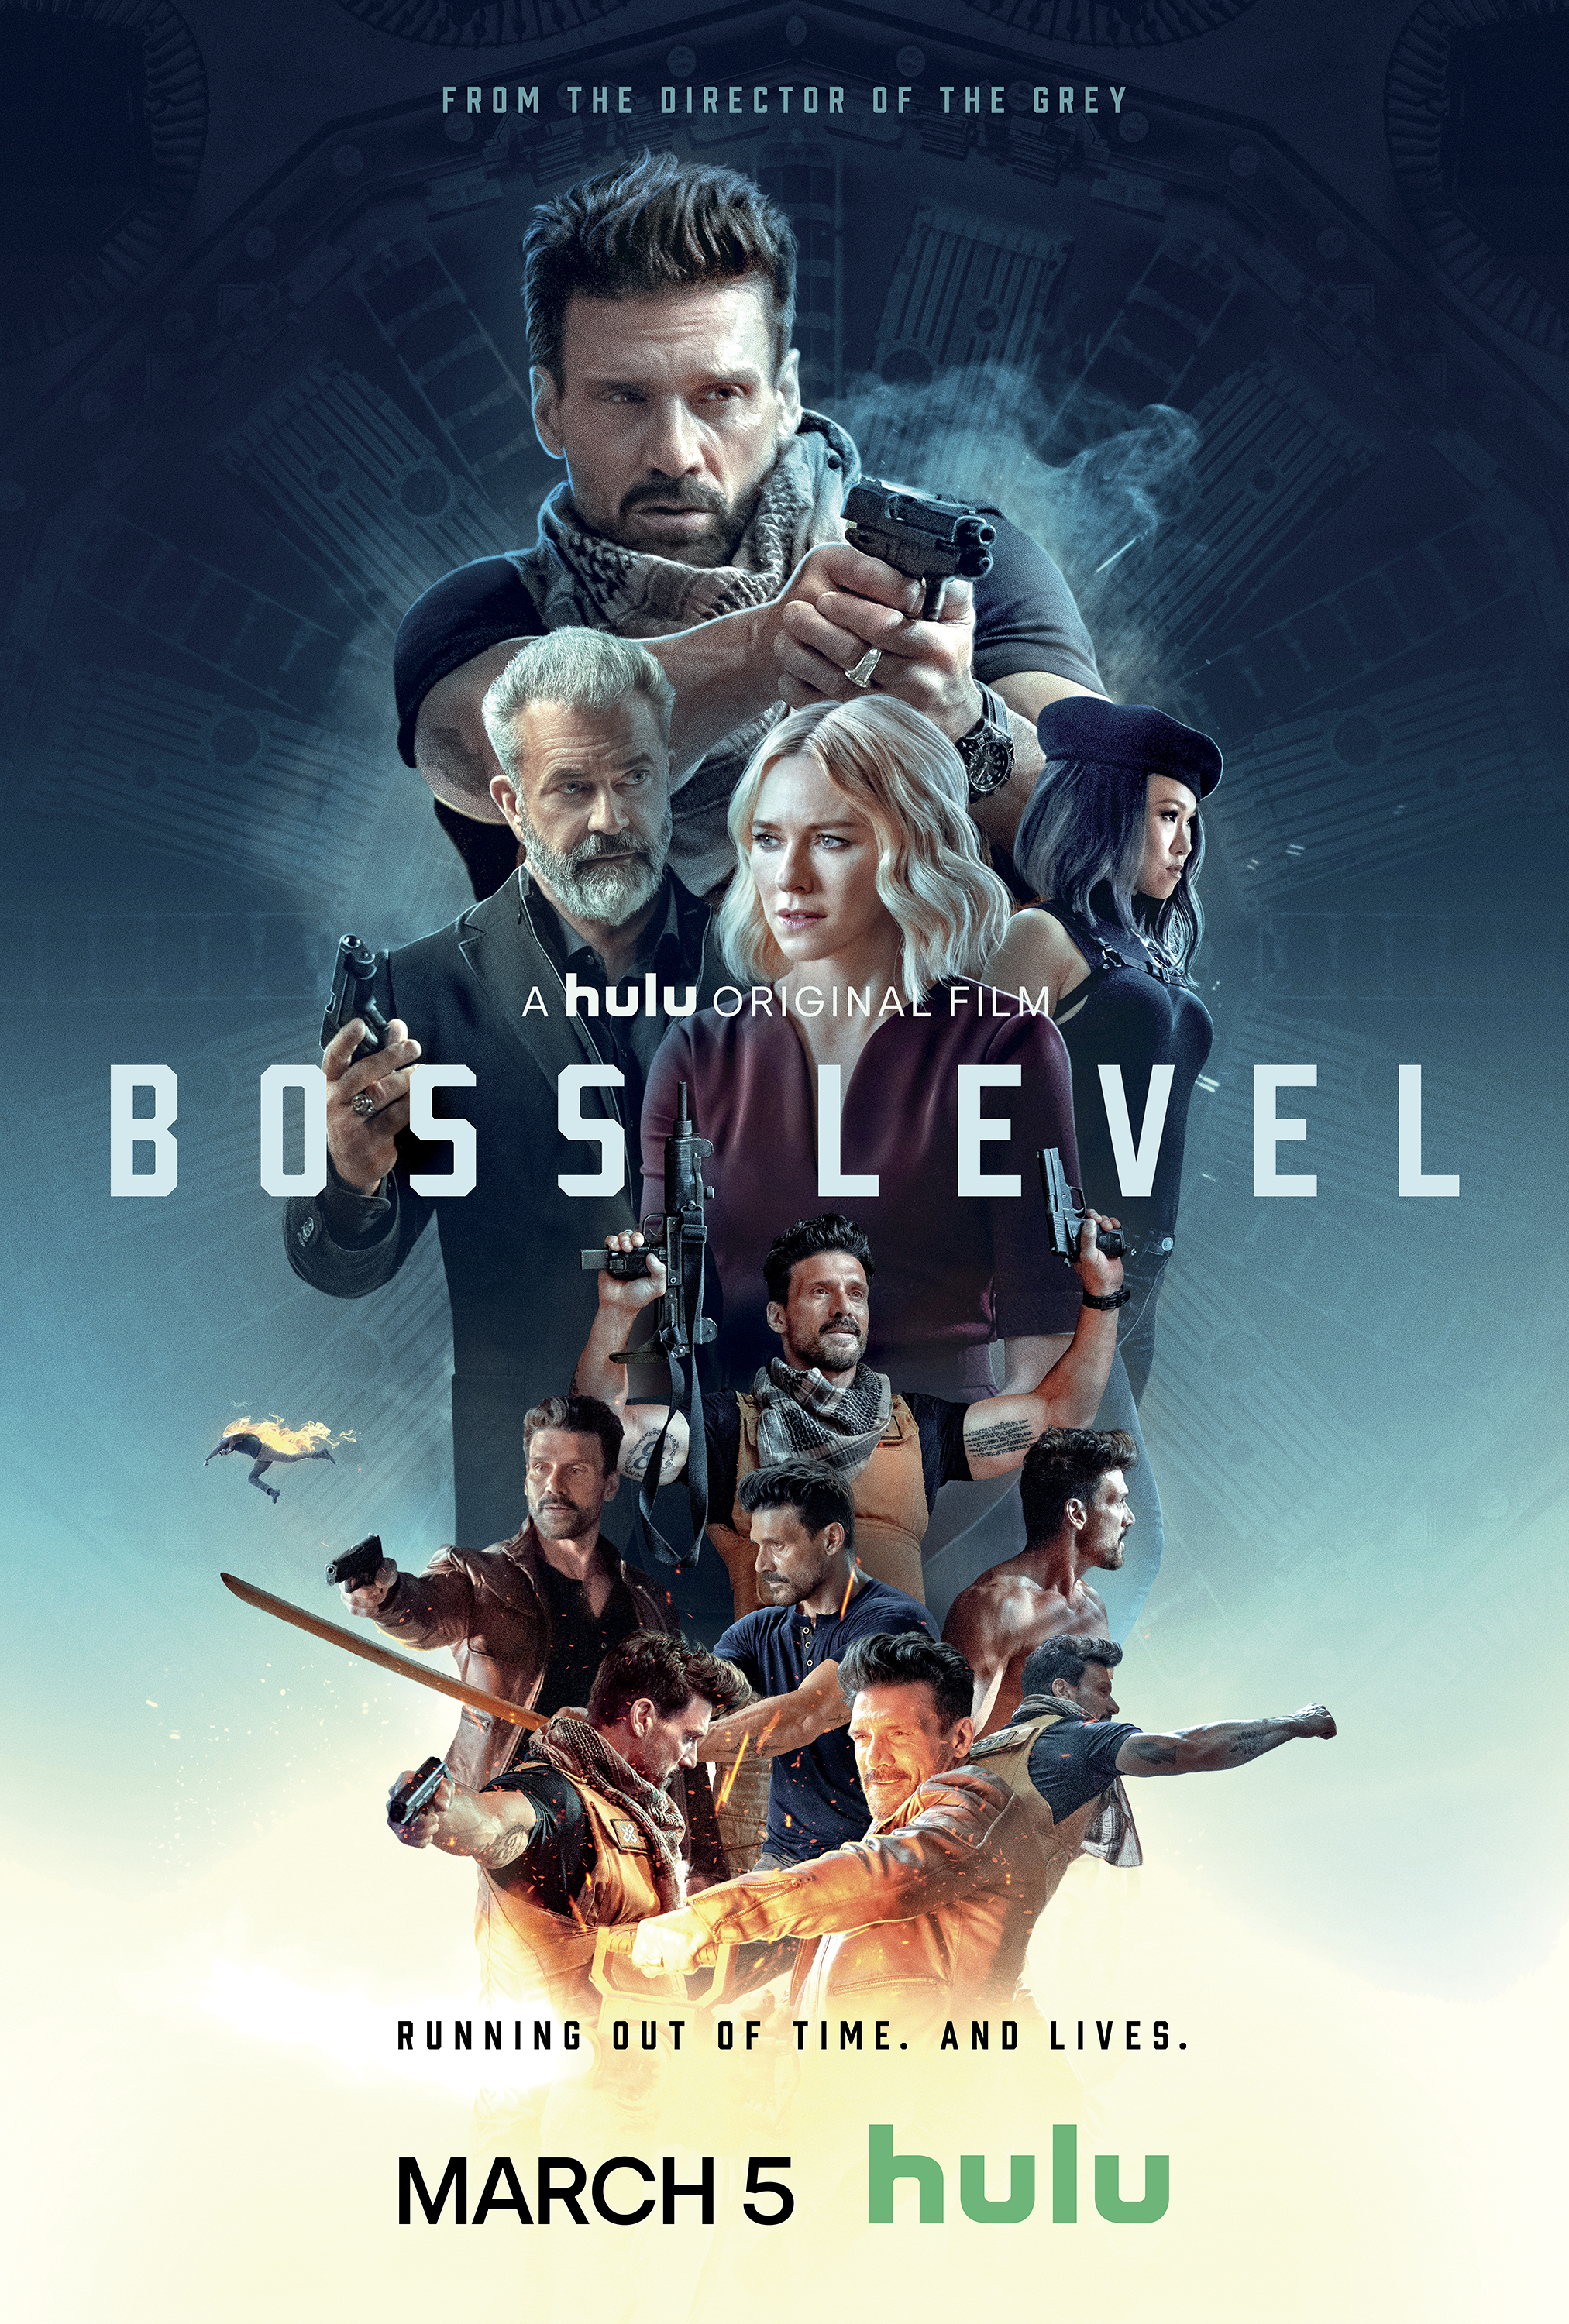 Download Filme Boss Level Torrent 2021 Qualidade Hd